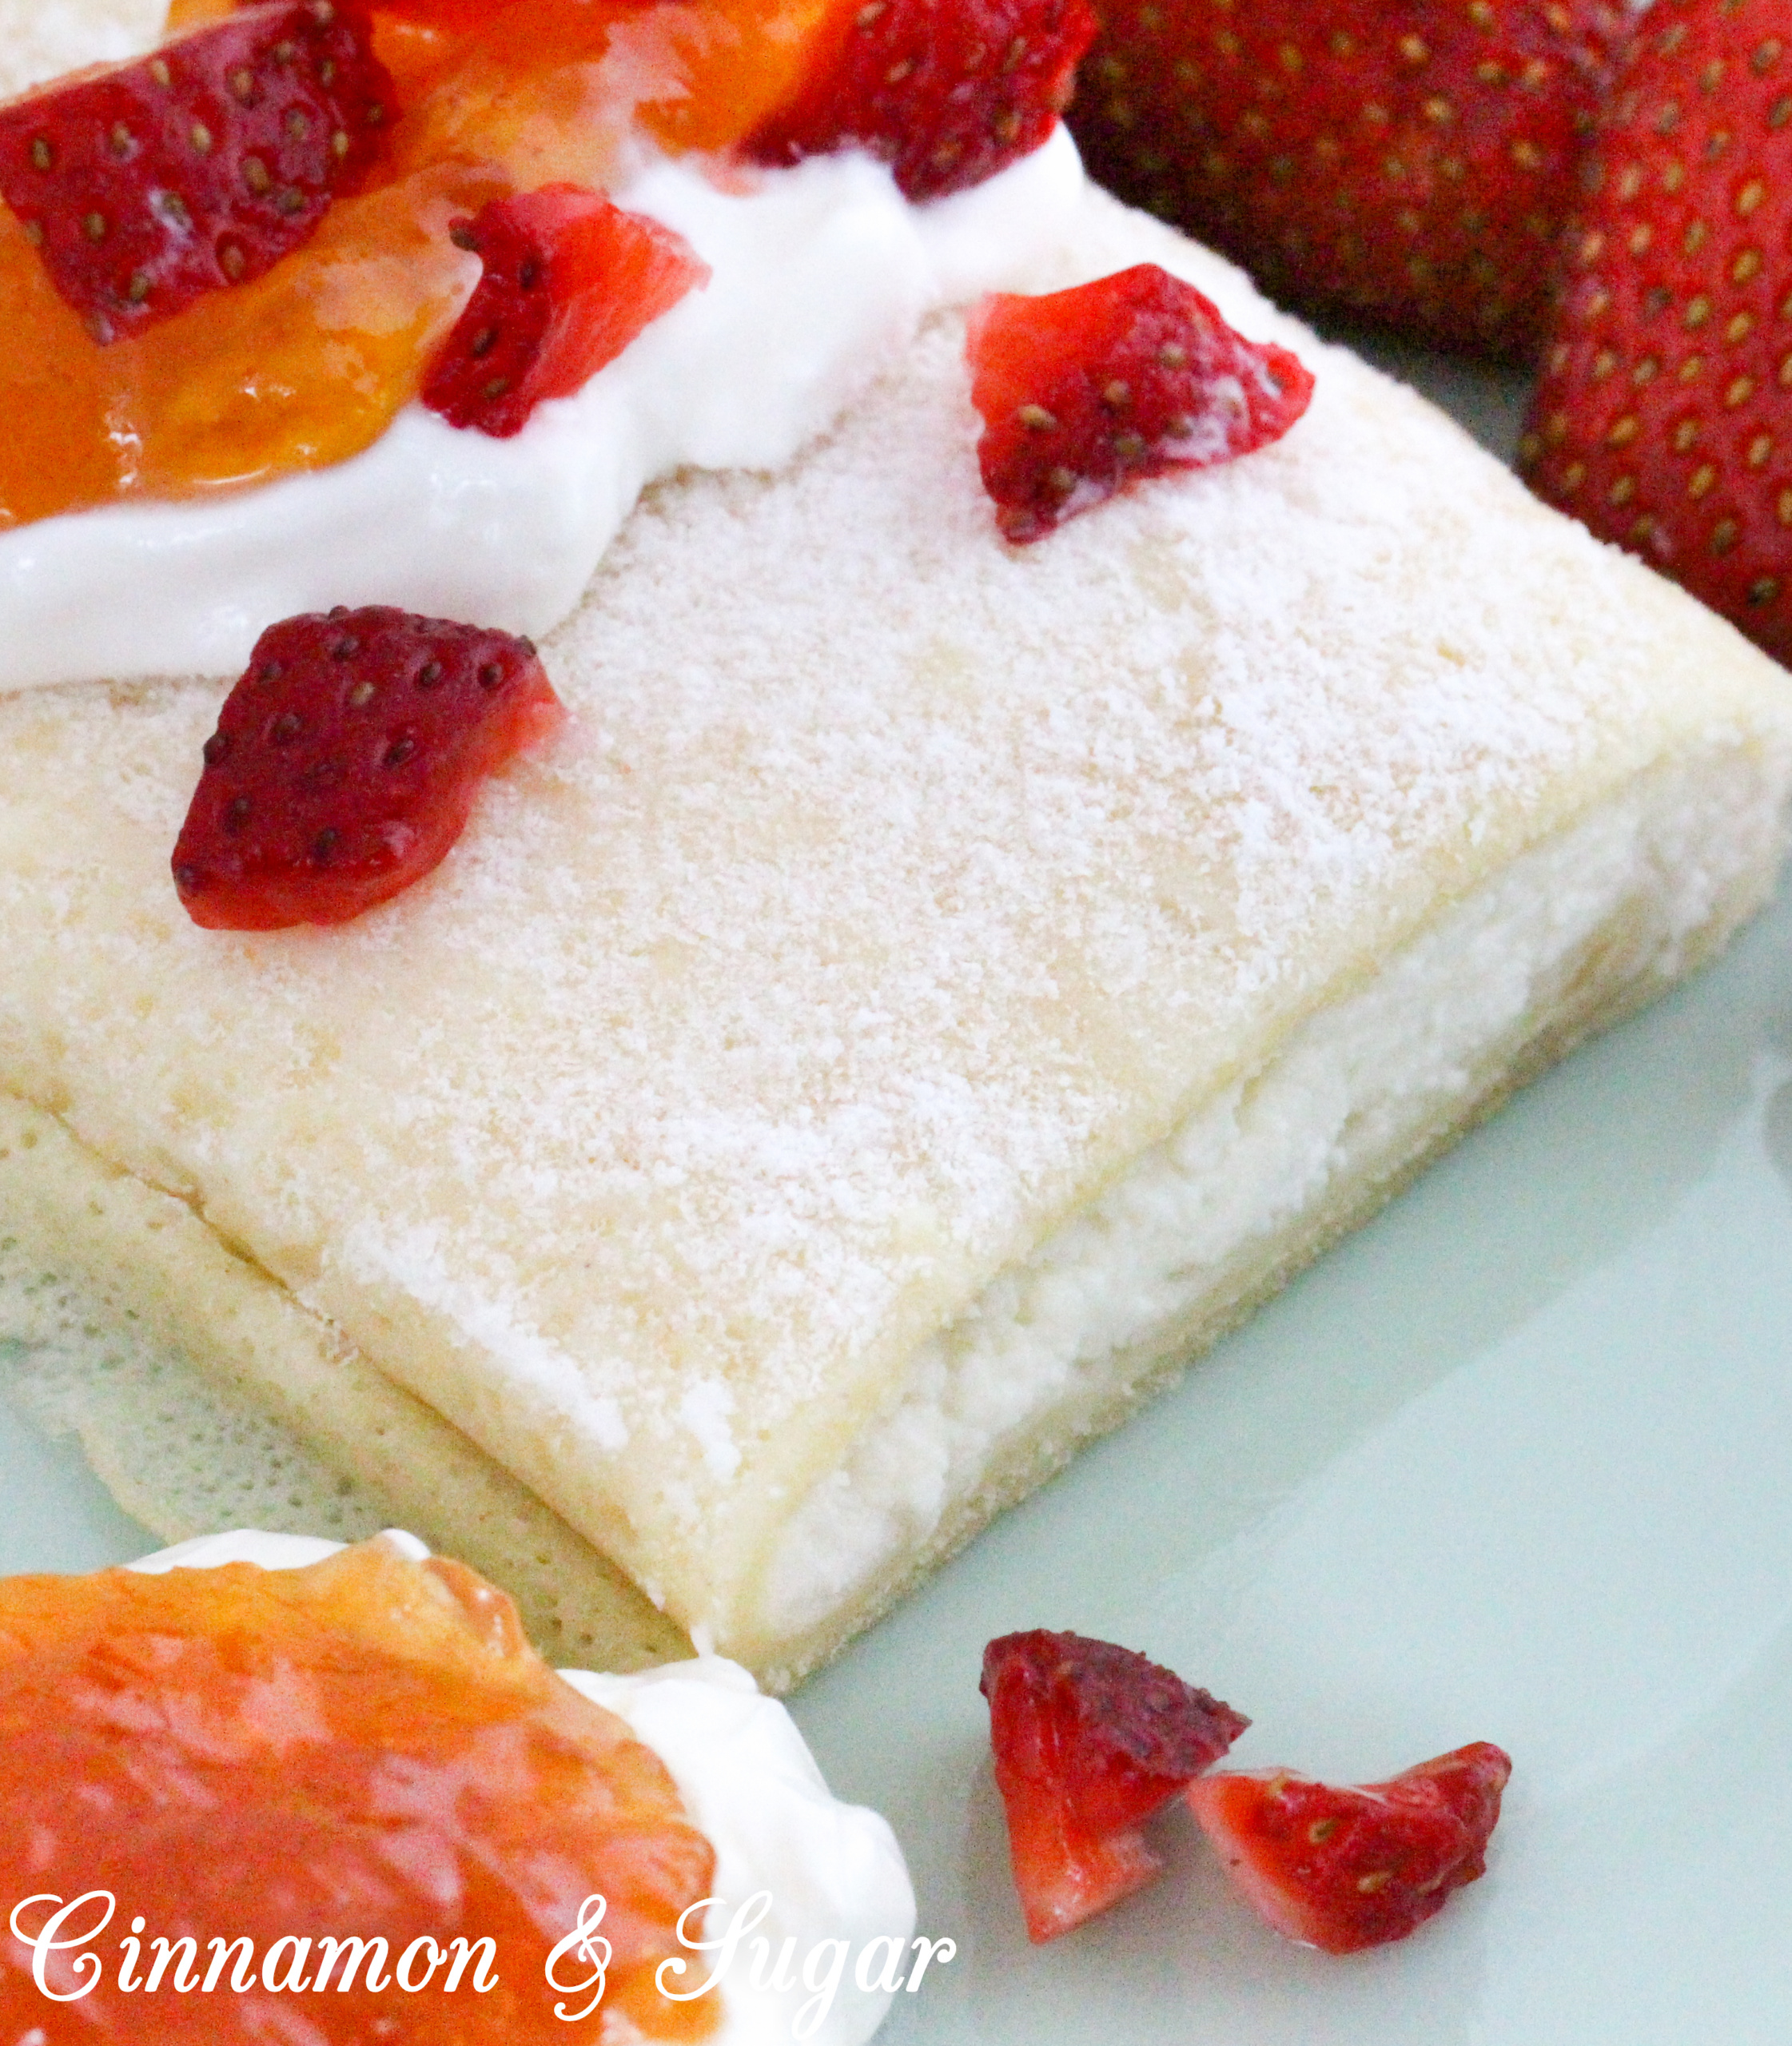 A traditional Hungarian dish, Juliana's Palacsinta are sweet cheese-filled crepes and baked with a light sprinkle of powdered sugar after filling. Garnish with sour cream, fresh strawberries, and jam for a delicious brunch or a breakfast-themed dinner. Recipe shared with permission granted by Julia Buckley, author of DEATH OF A WANDERING WOLF.